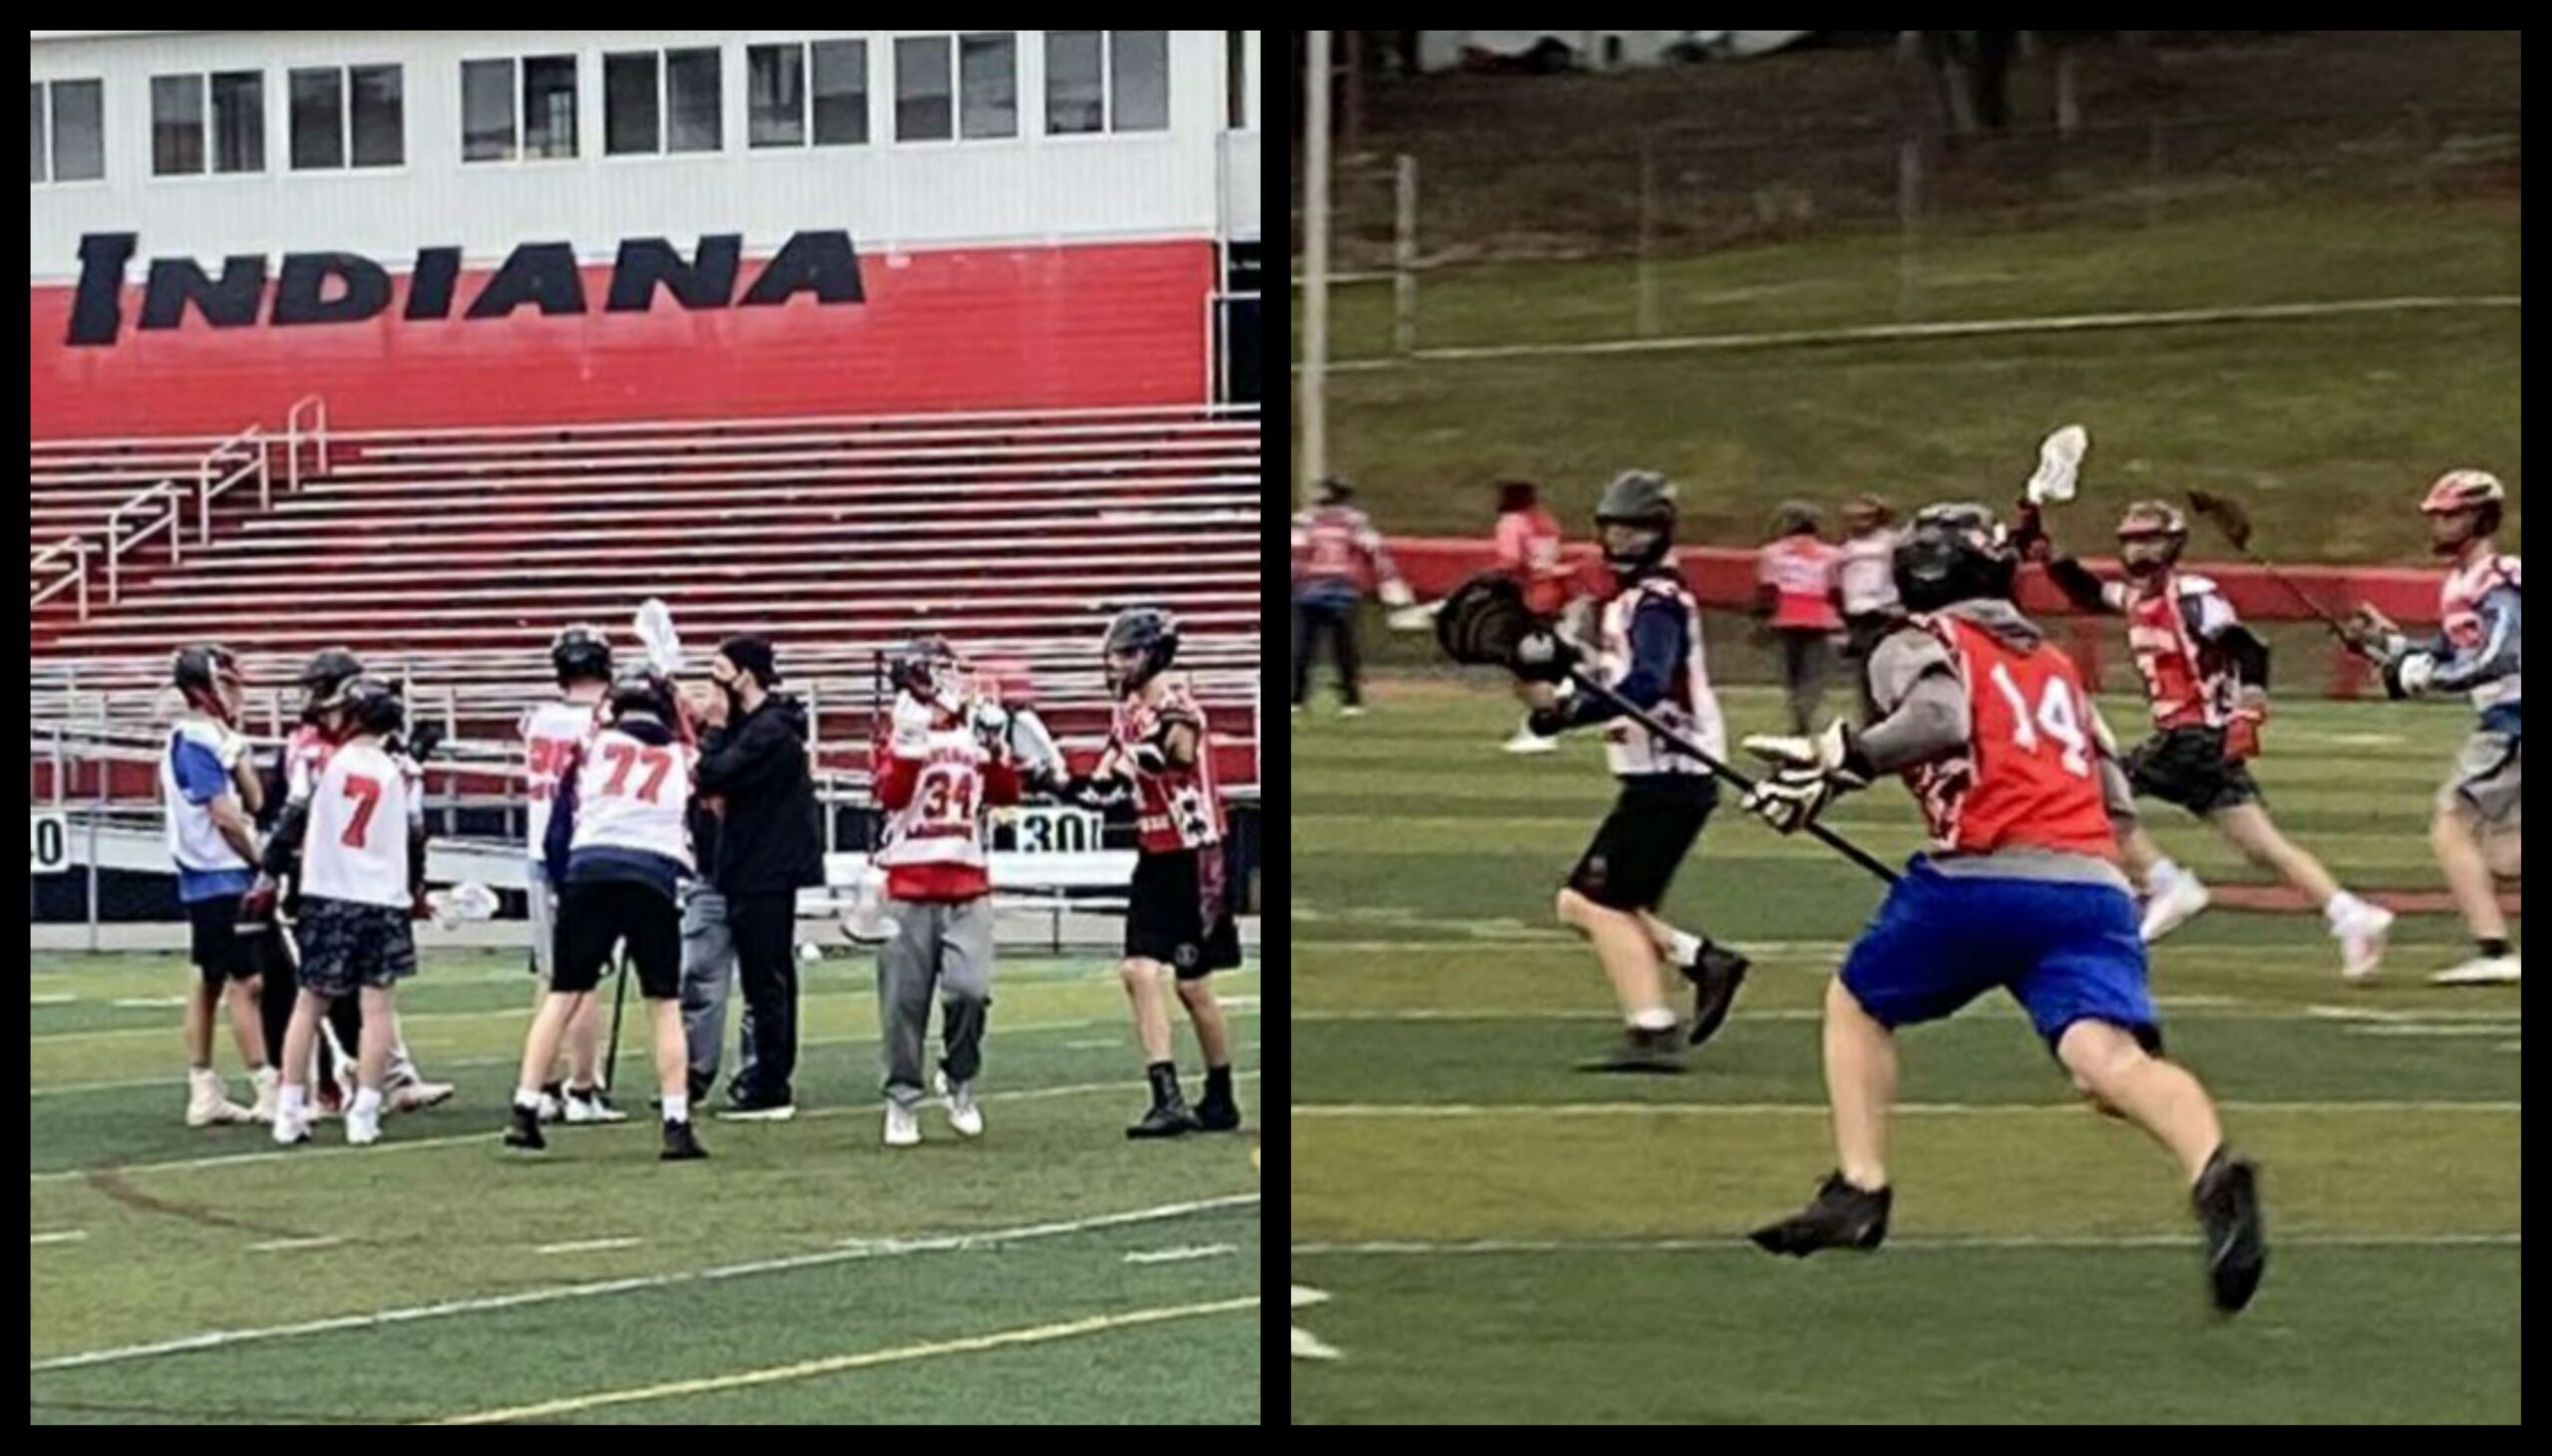 Boy's lacrosse team charges into a new season